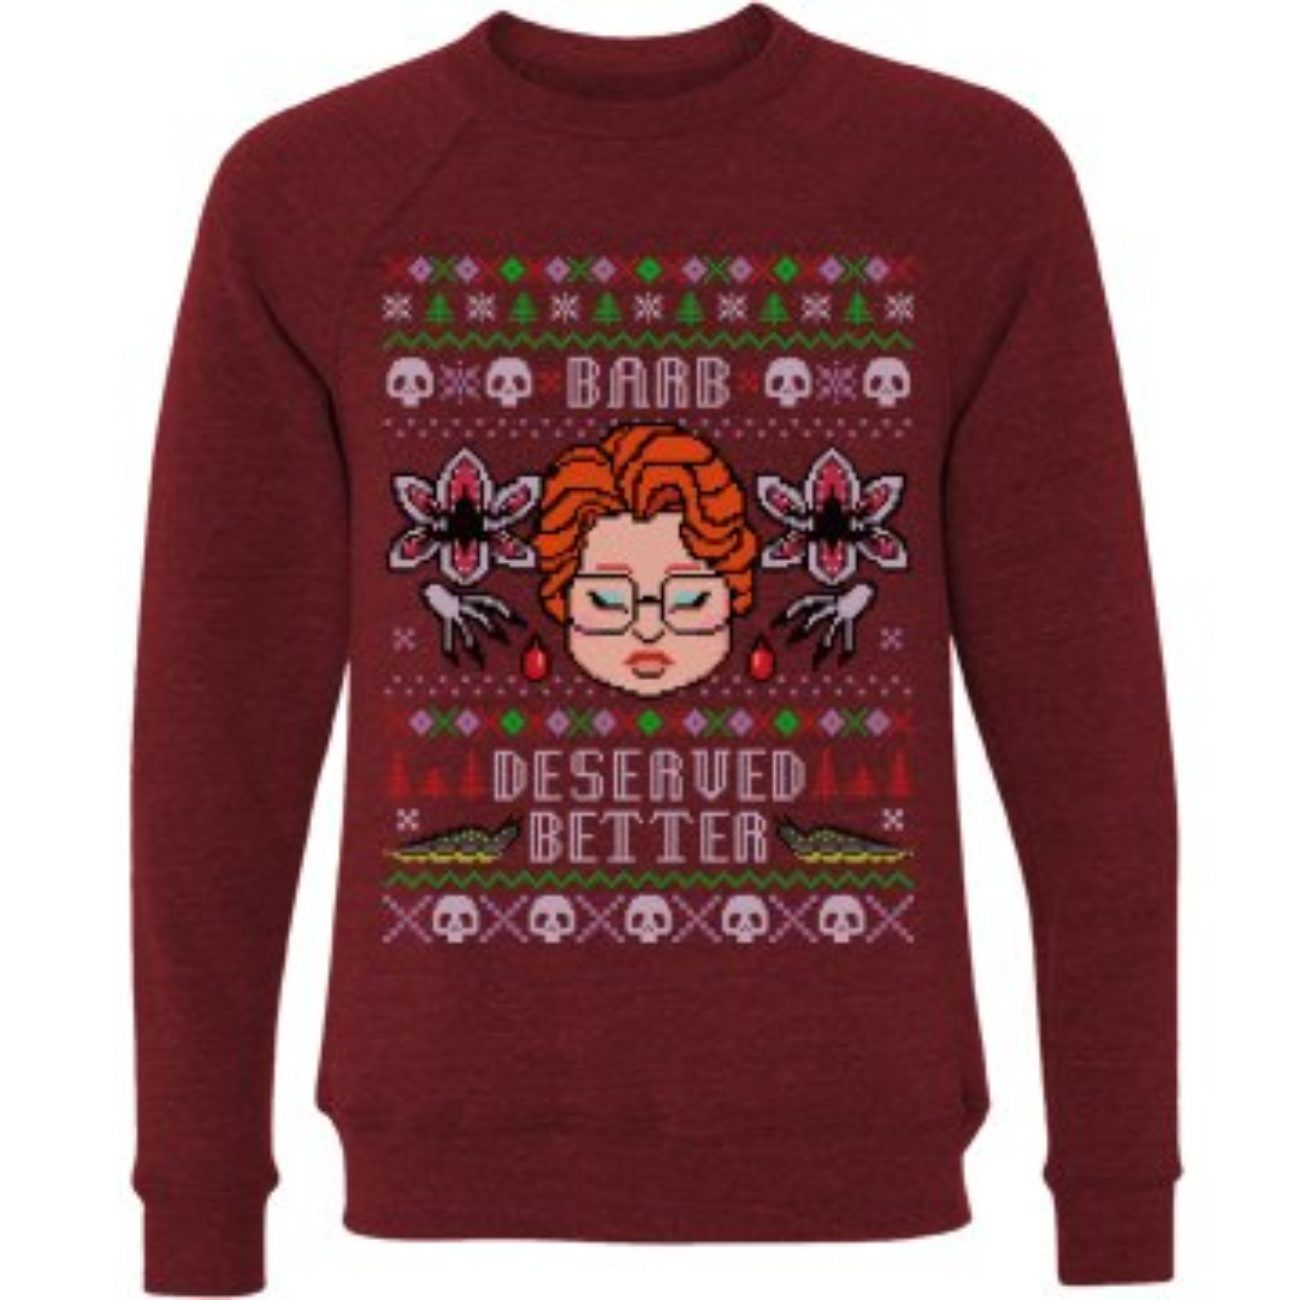 18 Stranger Things holiday sweaters to shop for Christmas gifts ...